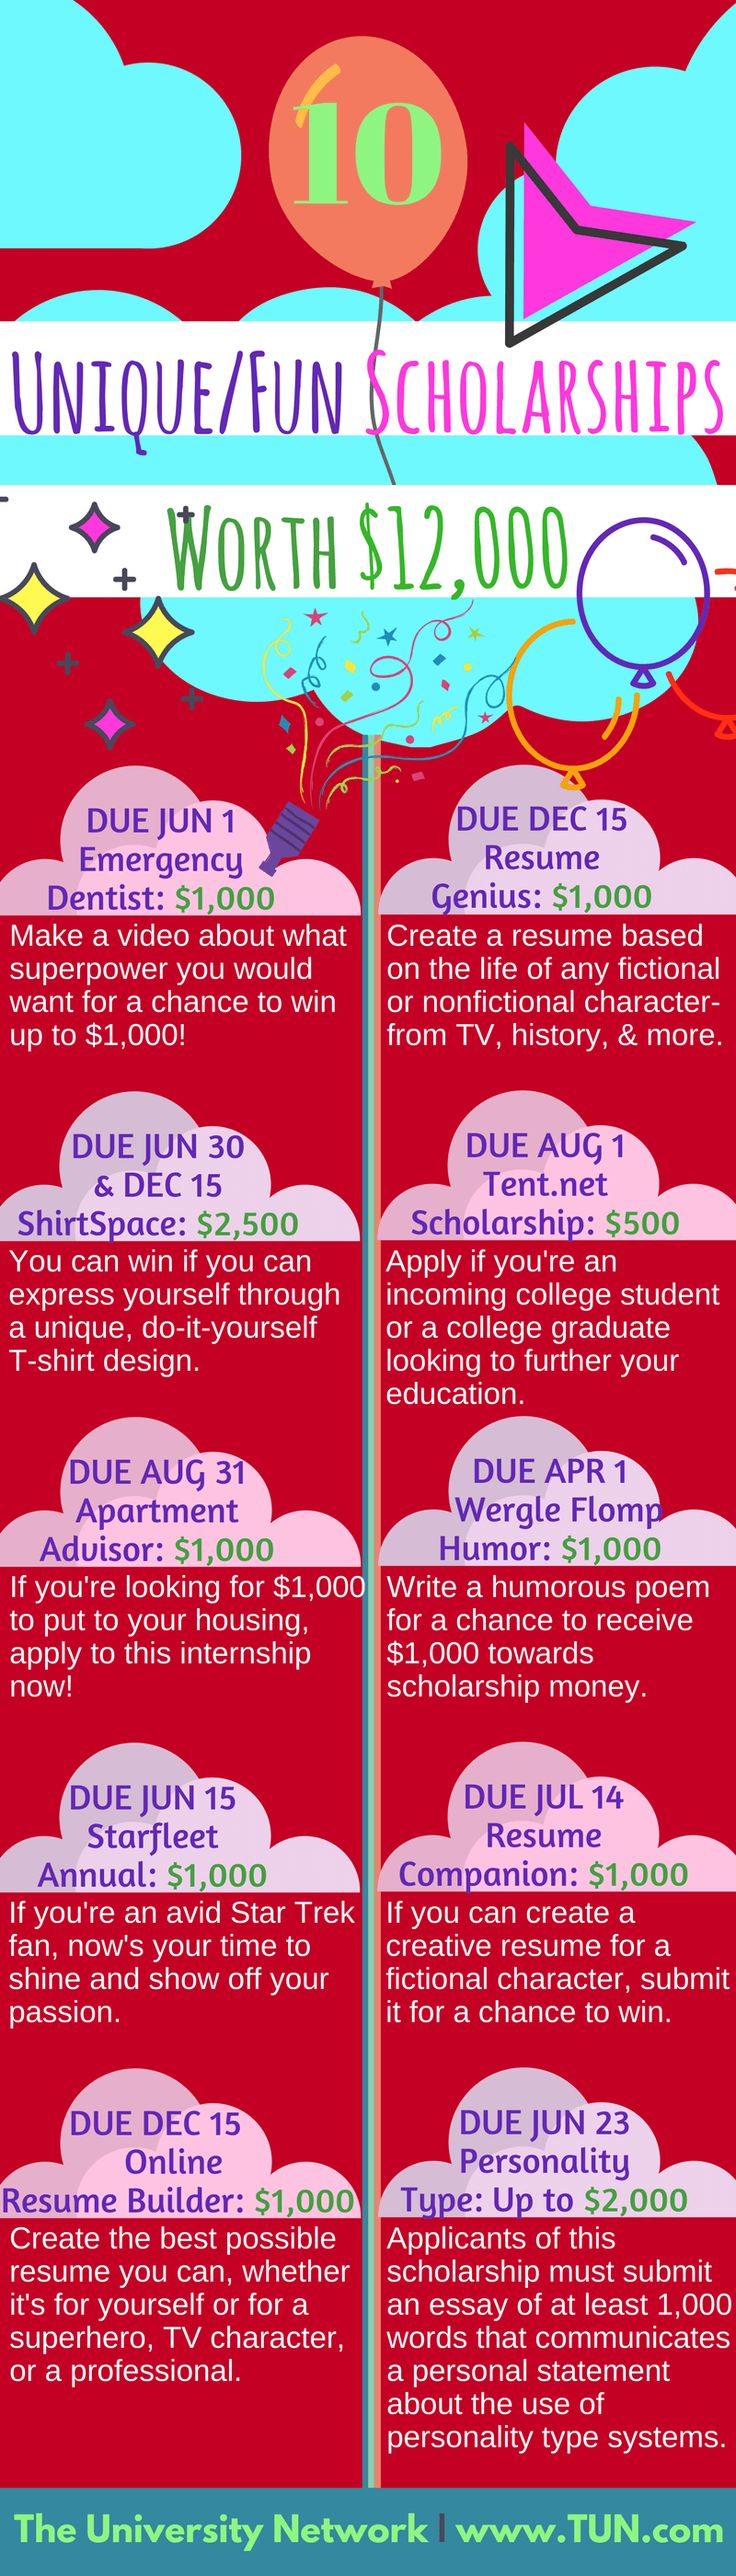 If you're looking for fun scholarships, here they are! #unique #scholarships worth $12,000+